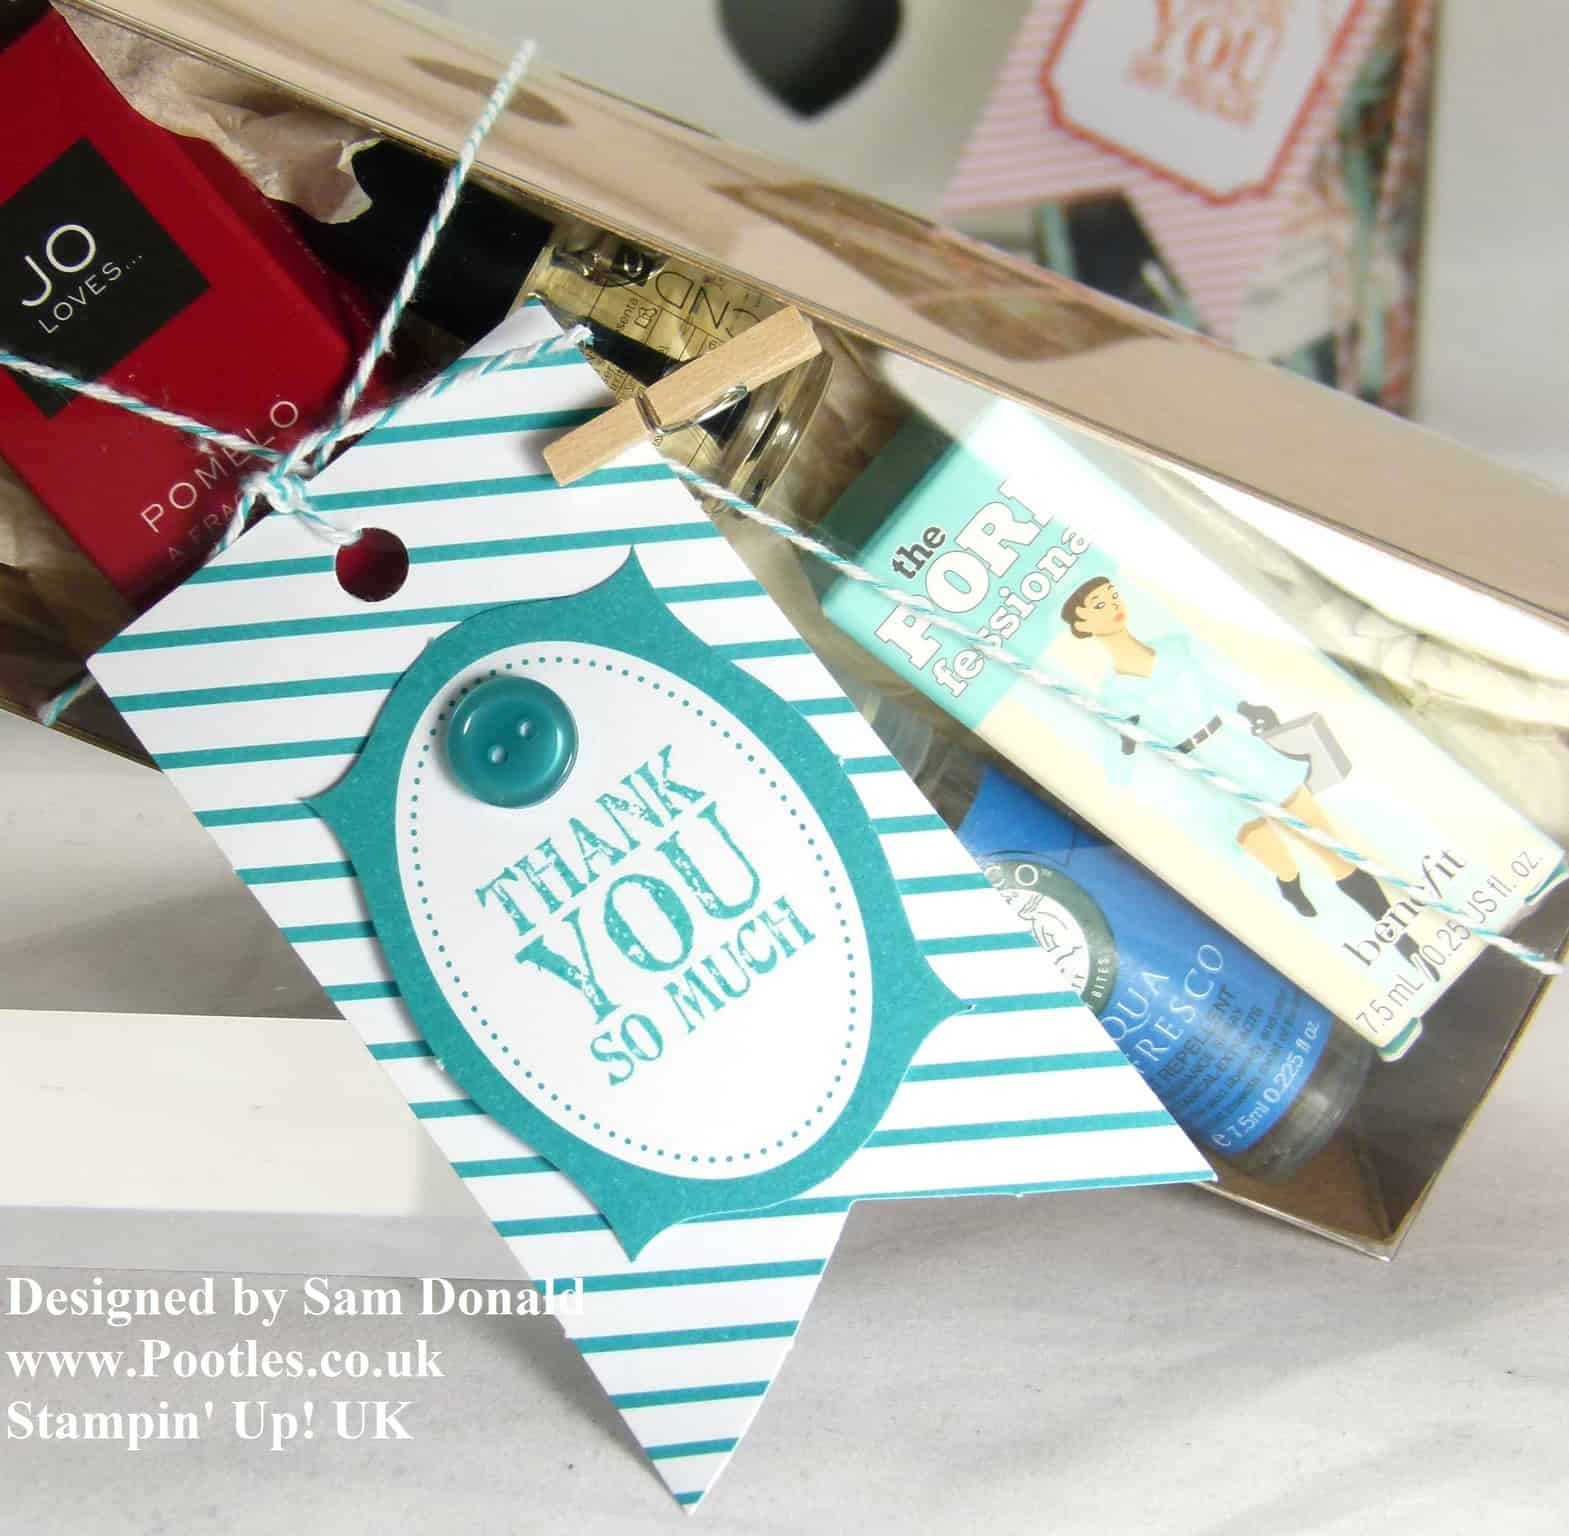 Pootles Stampin Up UK Tag a BEAUTY Box